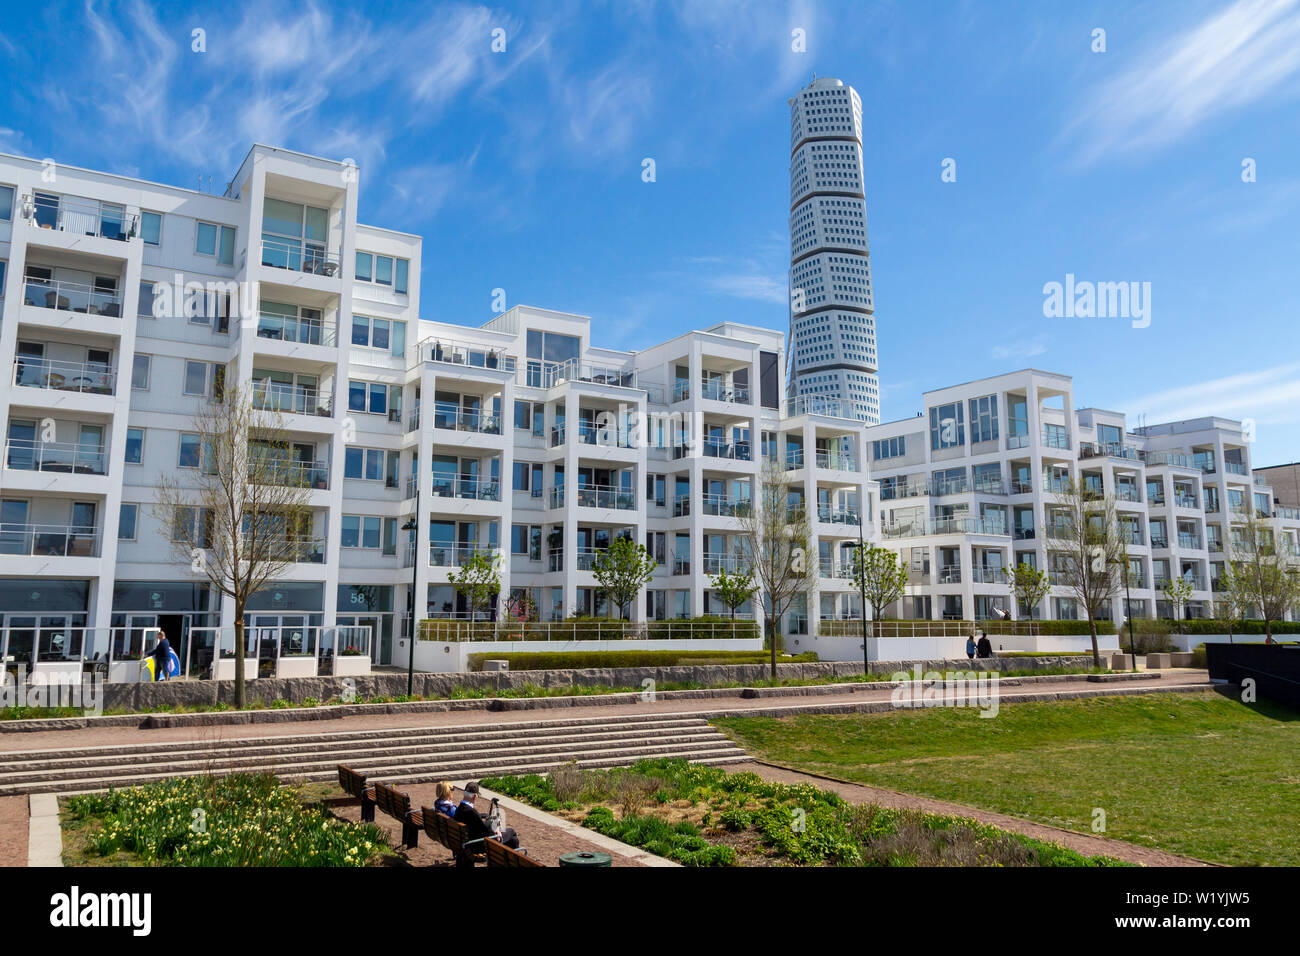 Modern architecture in Vastra Hamnen district, with the Turning Torso building from spanish arquitect Santiago Calatrav Stock Photo